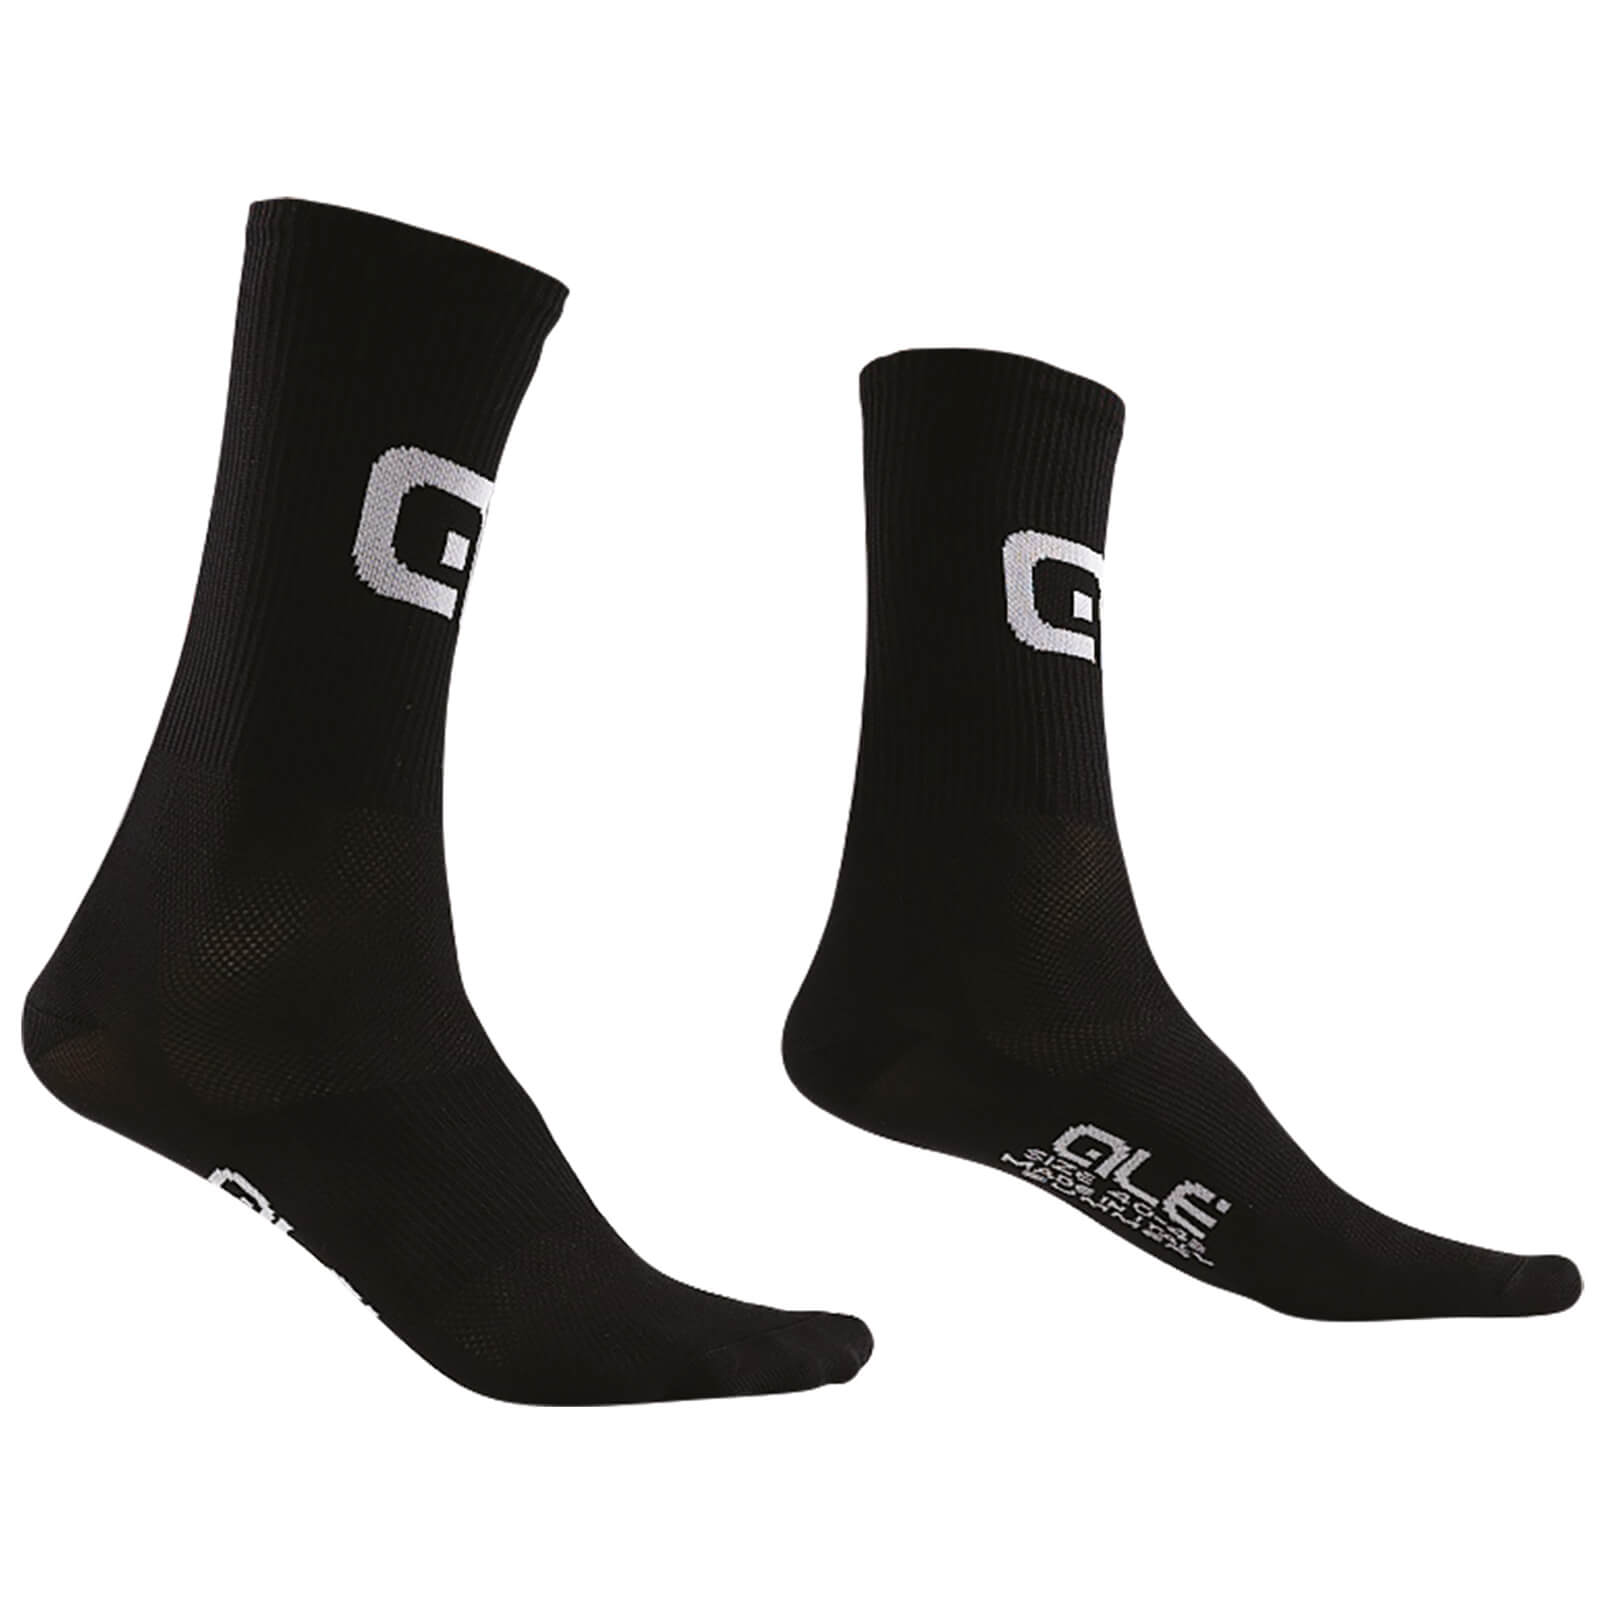 Alé Summer 12 Socks - Black